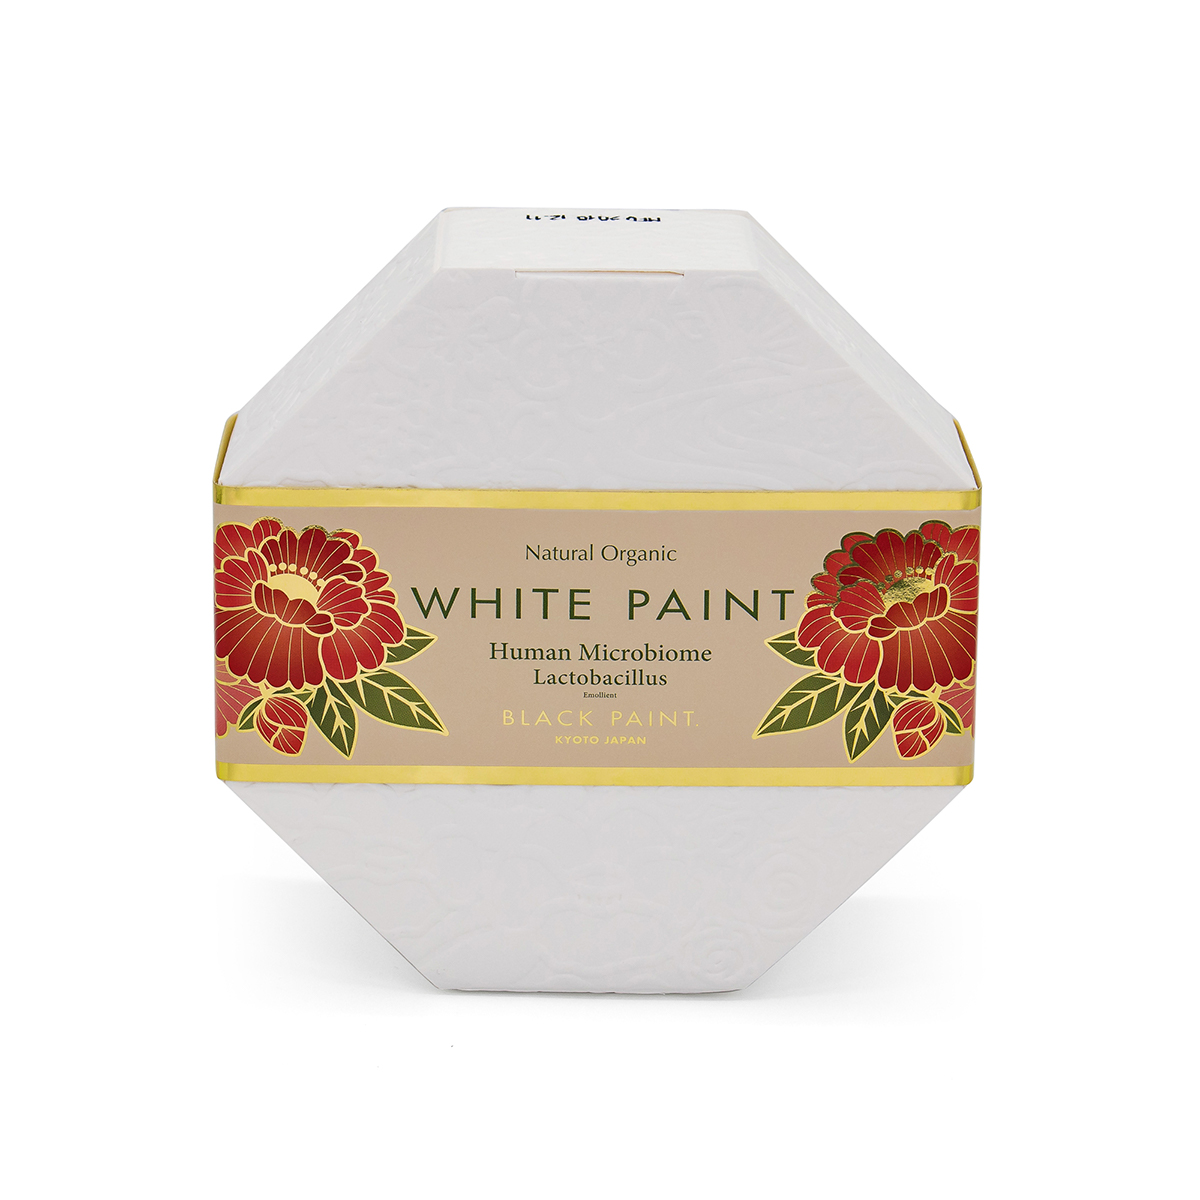 White Paint Soap 120g with Human Microbiome - front